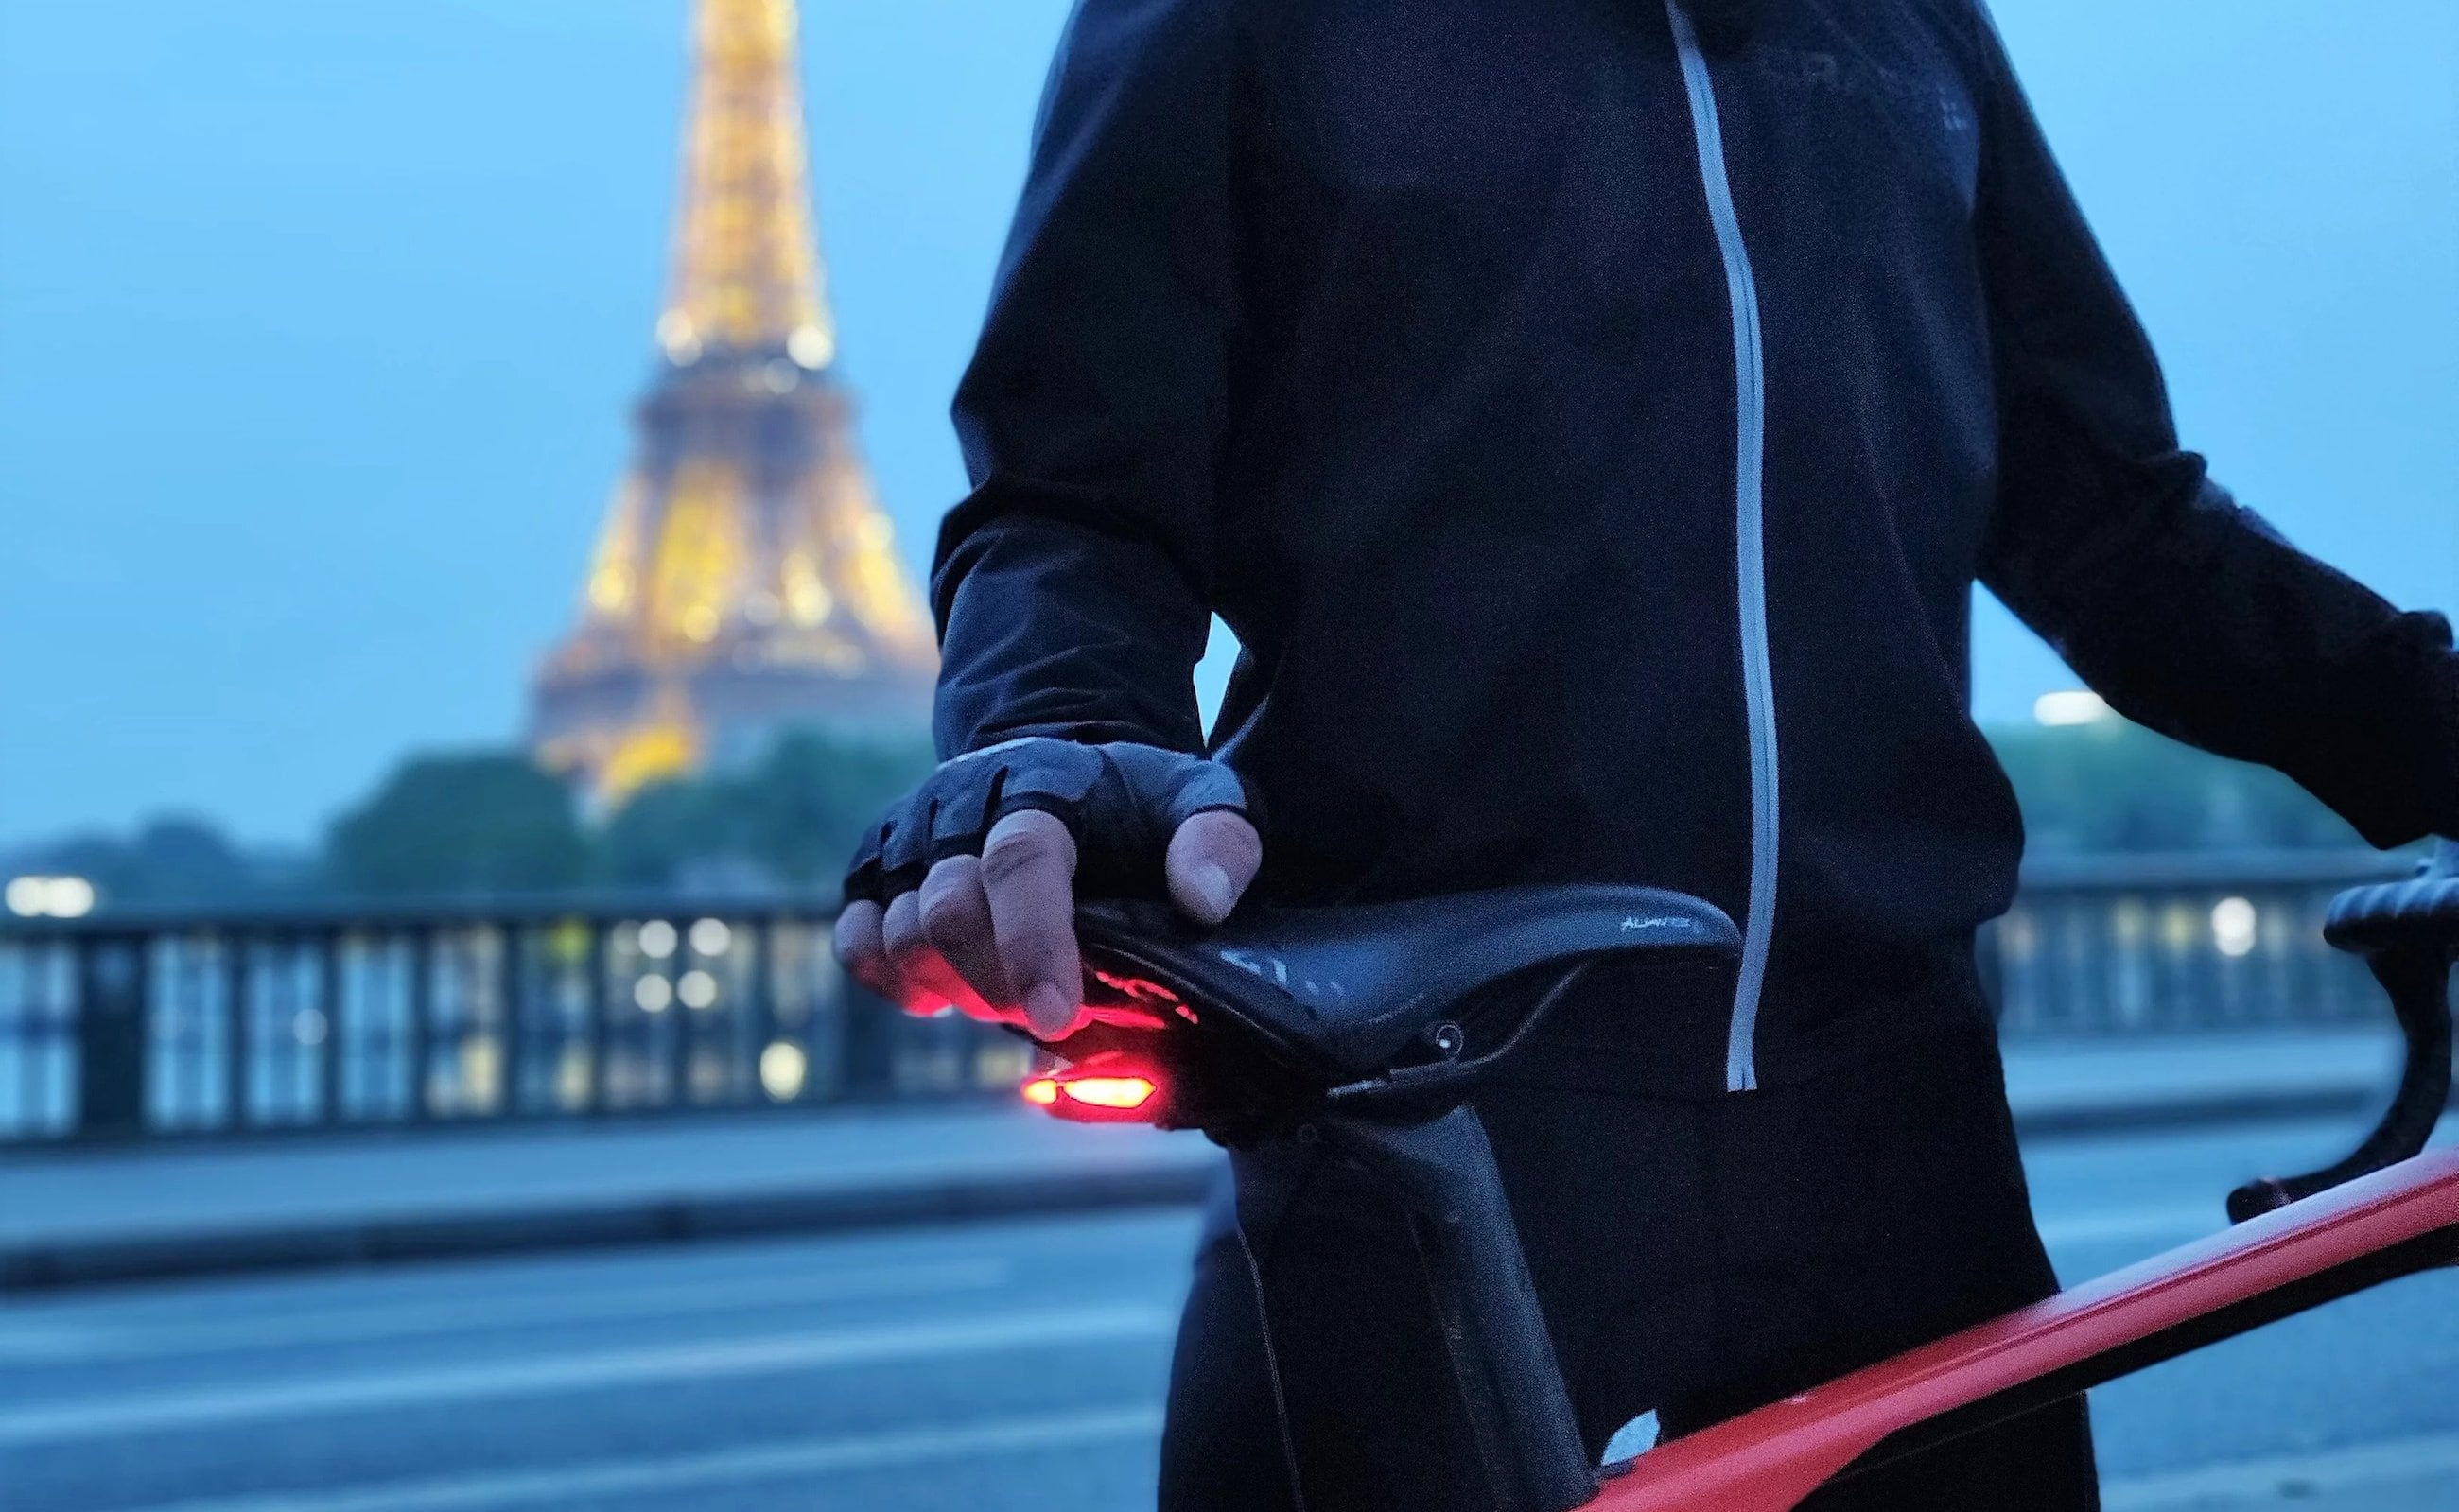 LUCIA Intelligent Bike Tail Light automatically adjusts to your surroundings